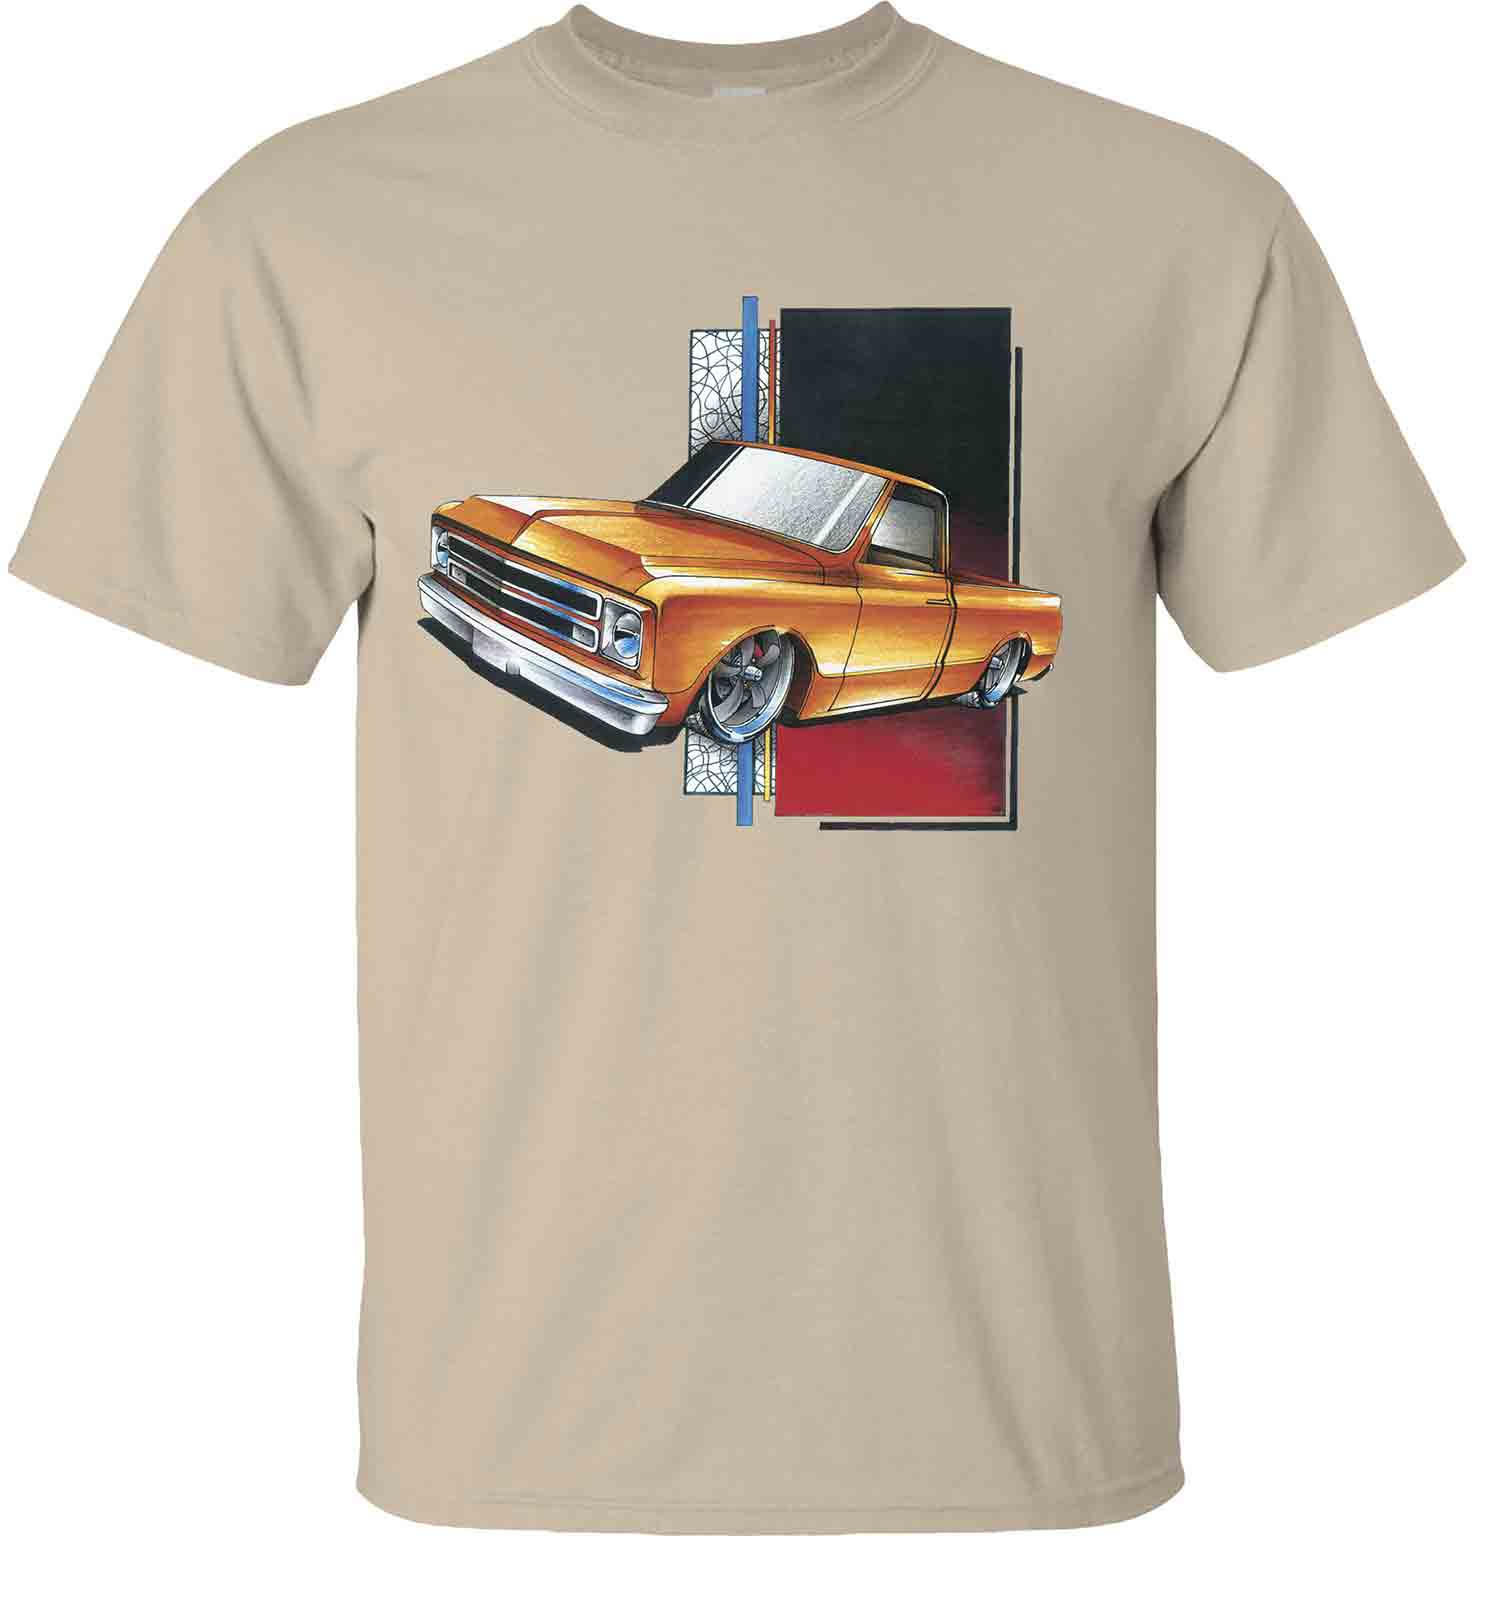 chevy-c-10-lowered-orange-truck-chevrolet-t-shirt-sand.jpg